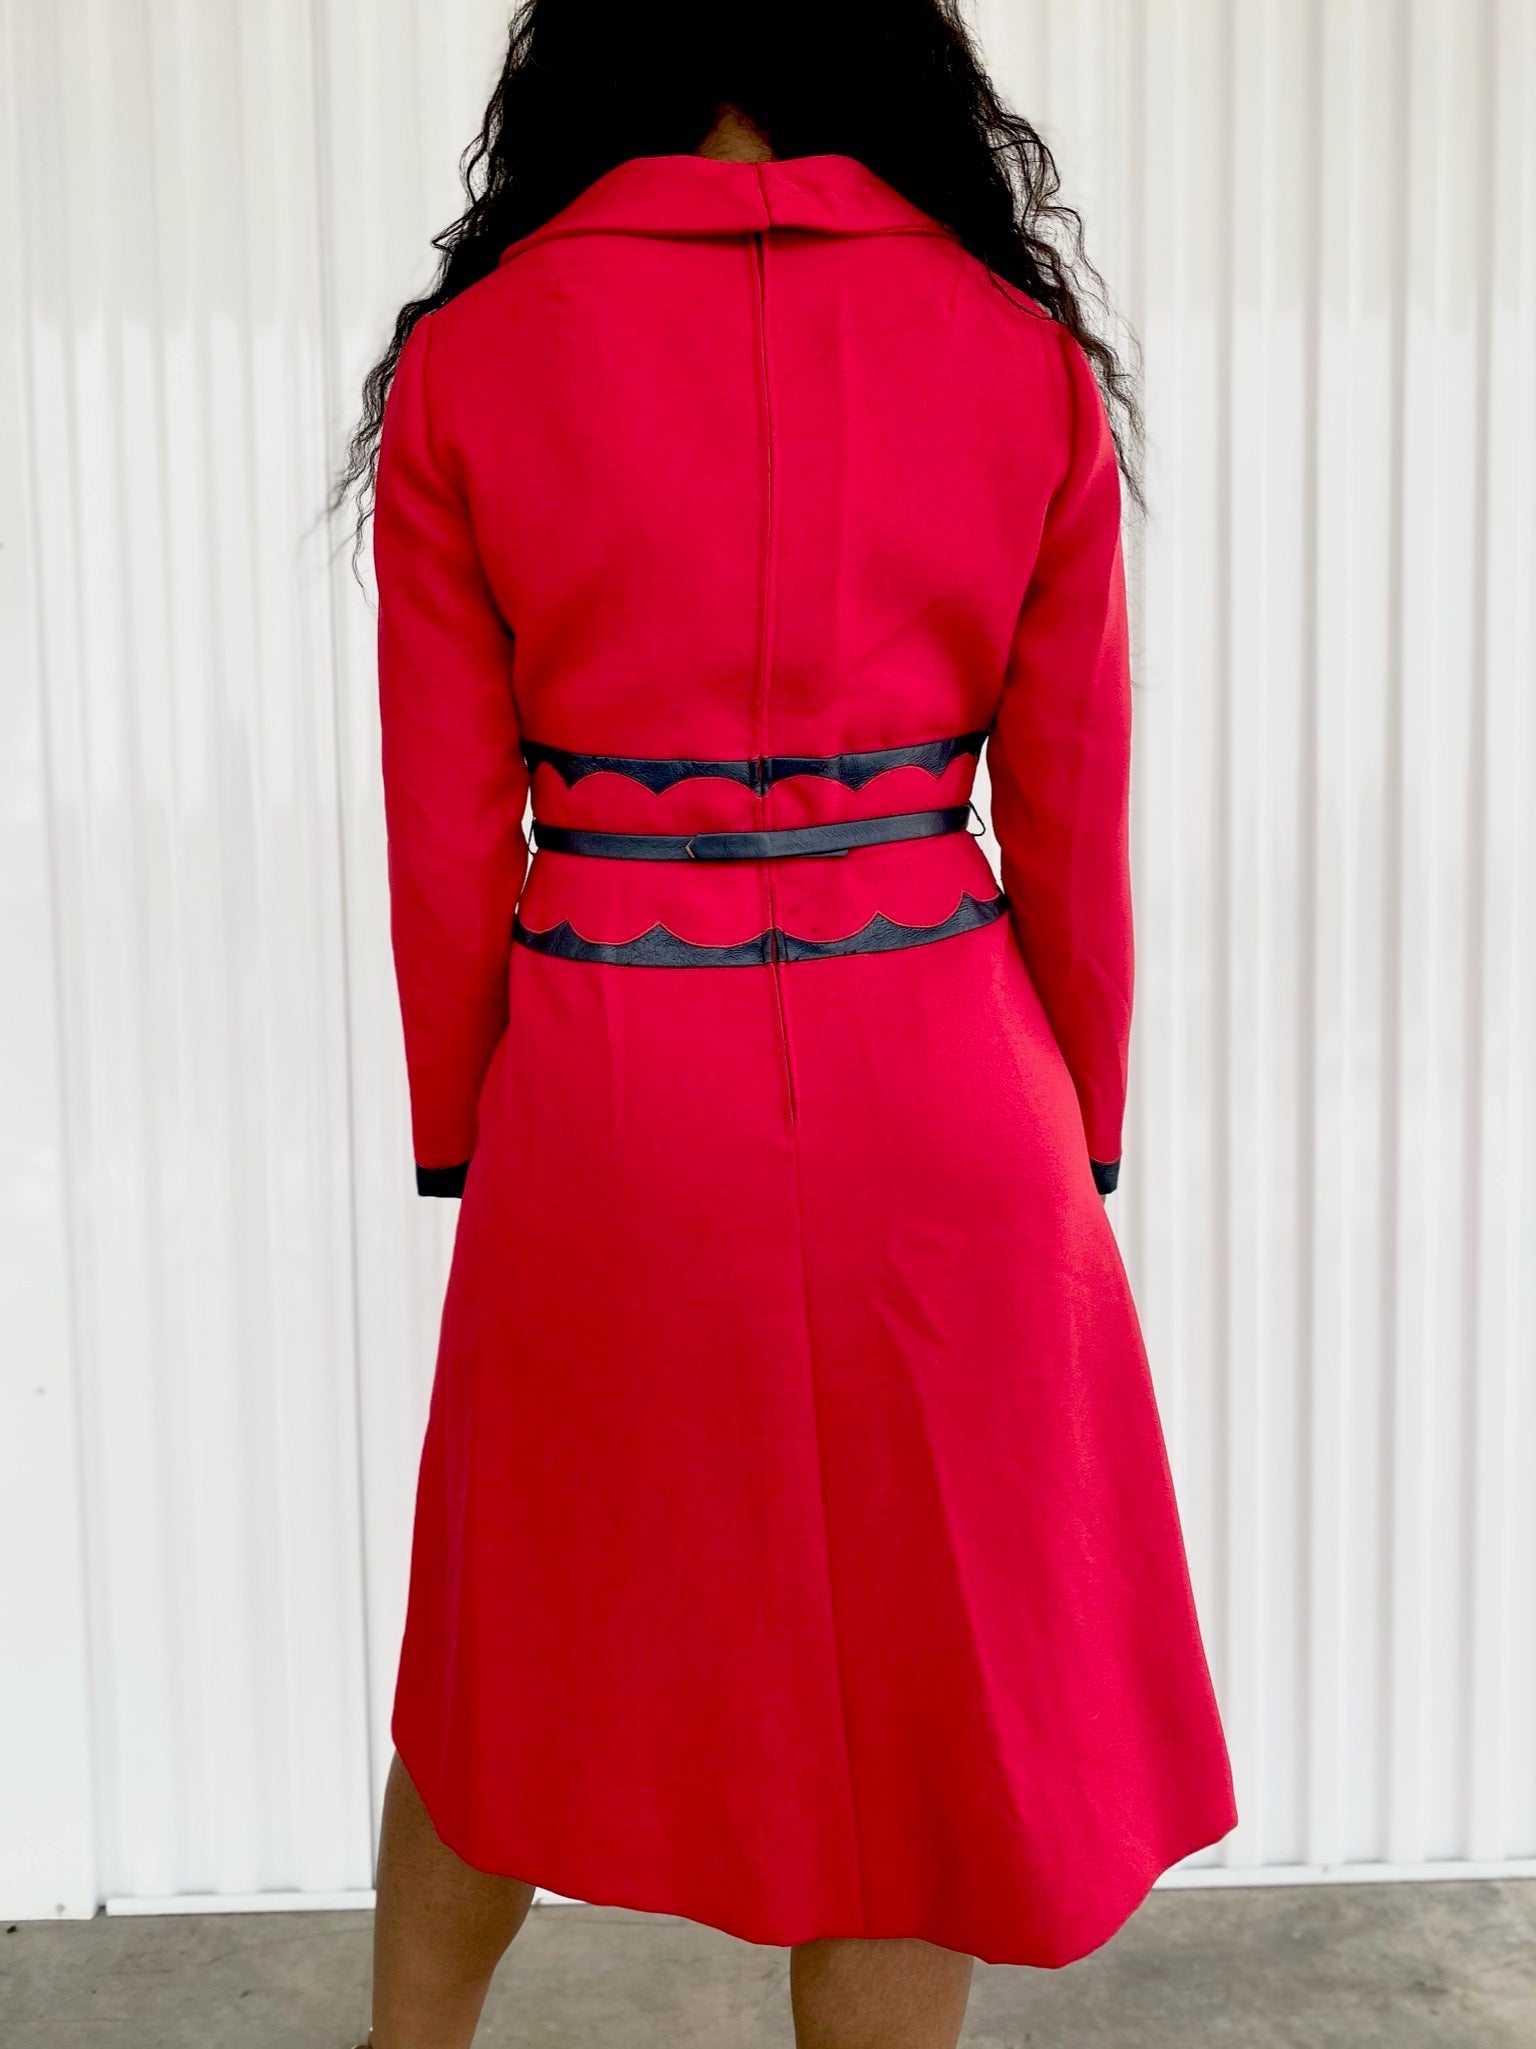 Shannon Rodgers Dress with Navy Leather Trim